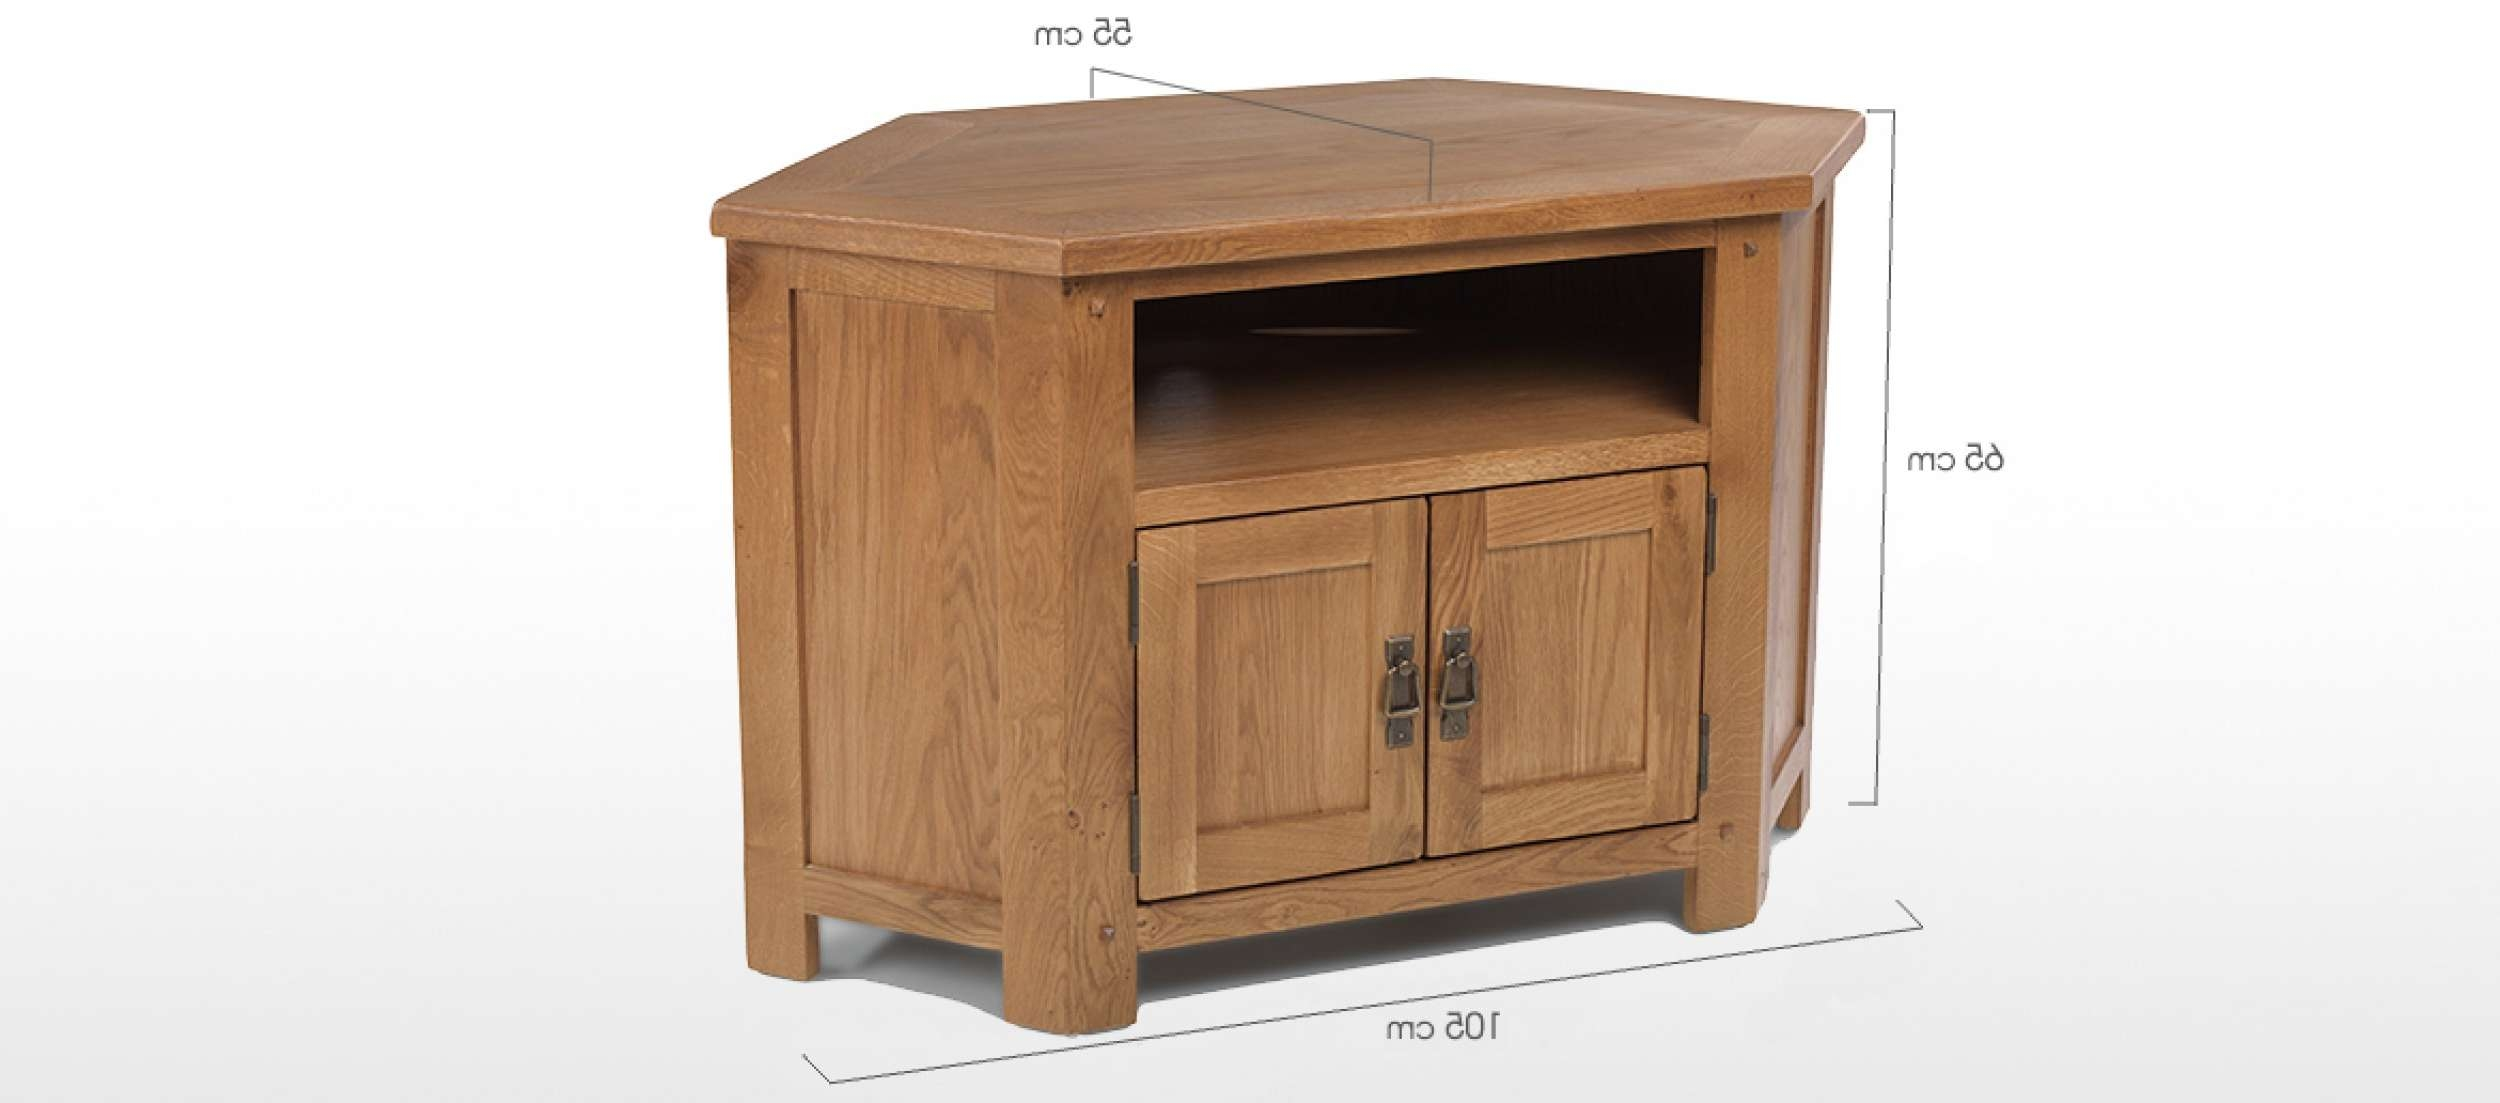 Rustic Oak Corner Tv Cabinet | Quercus Living For Chunky Tv Cabinets (View 11 of 20)